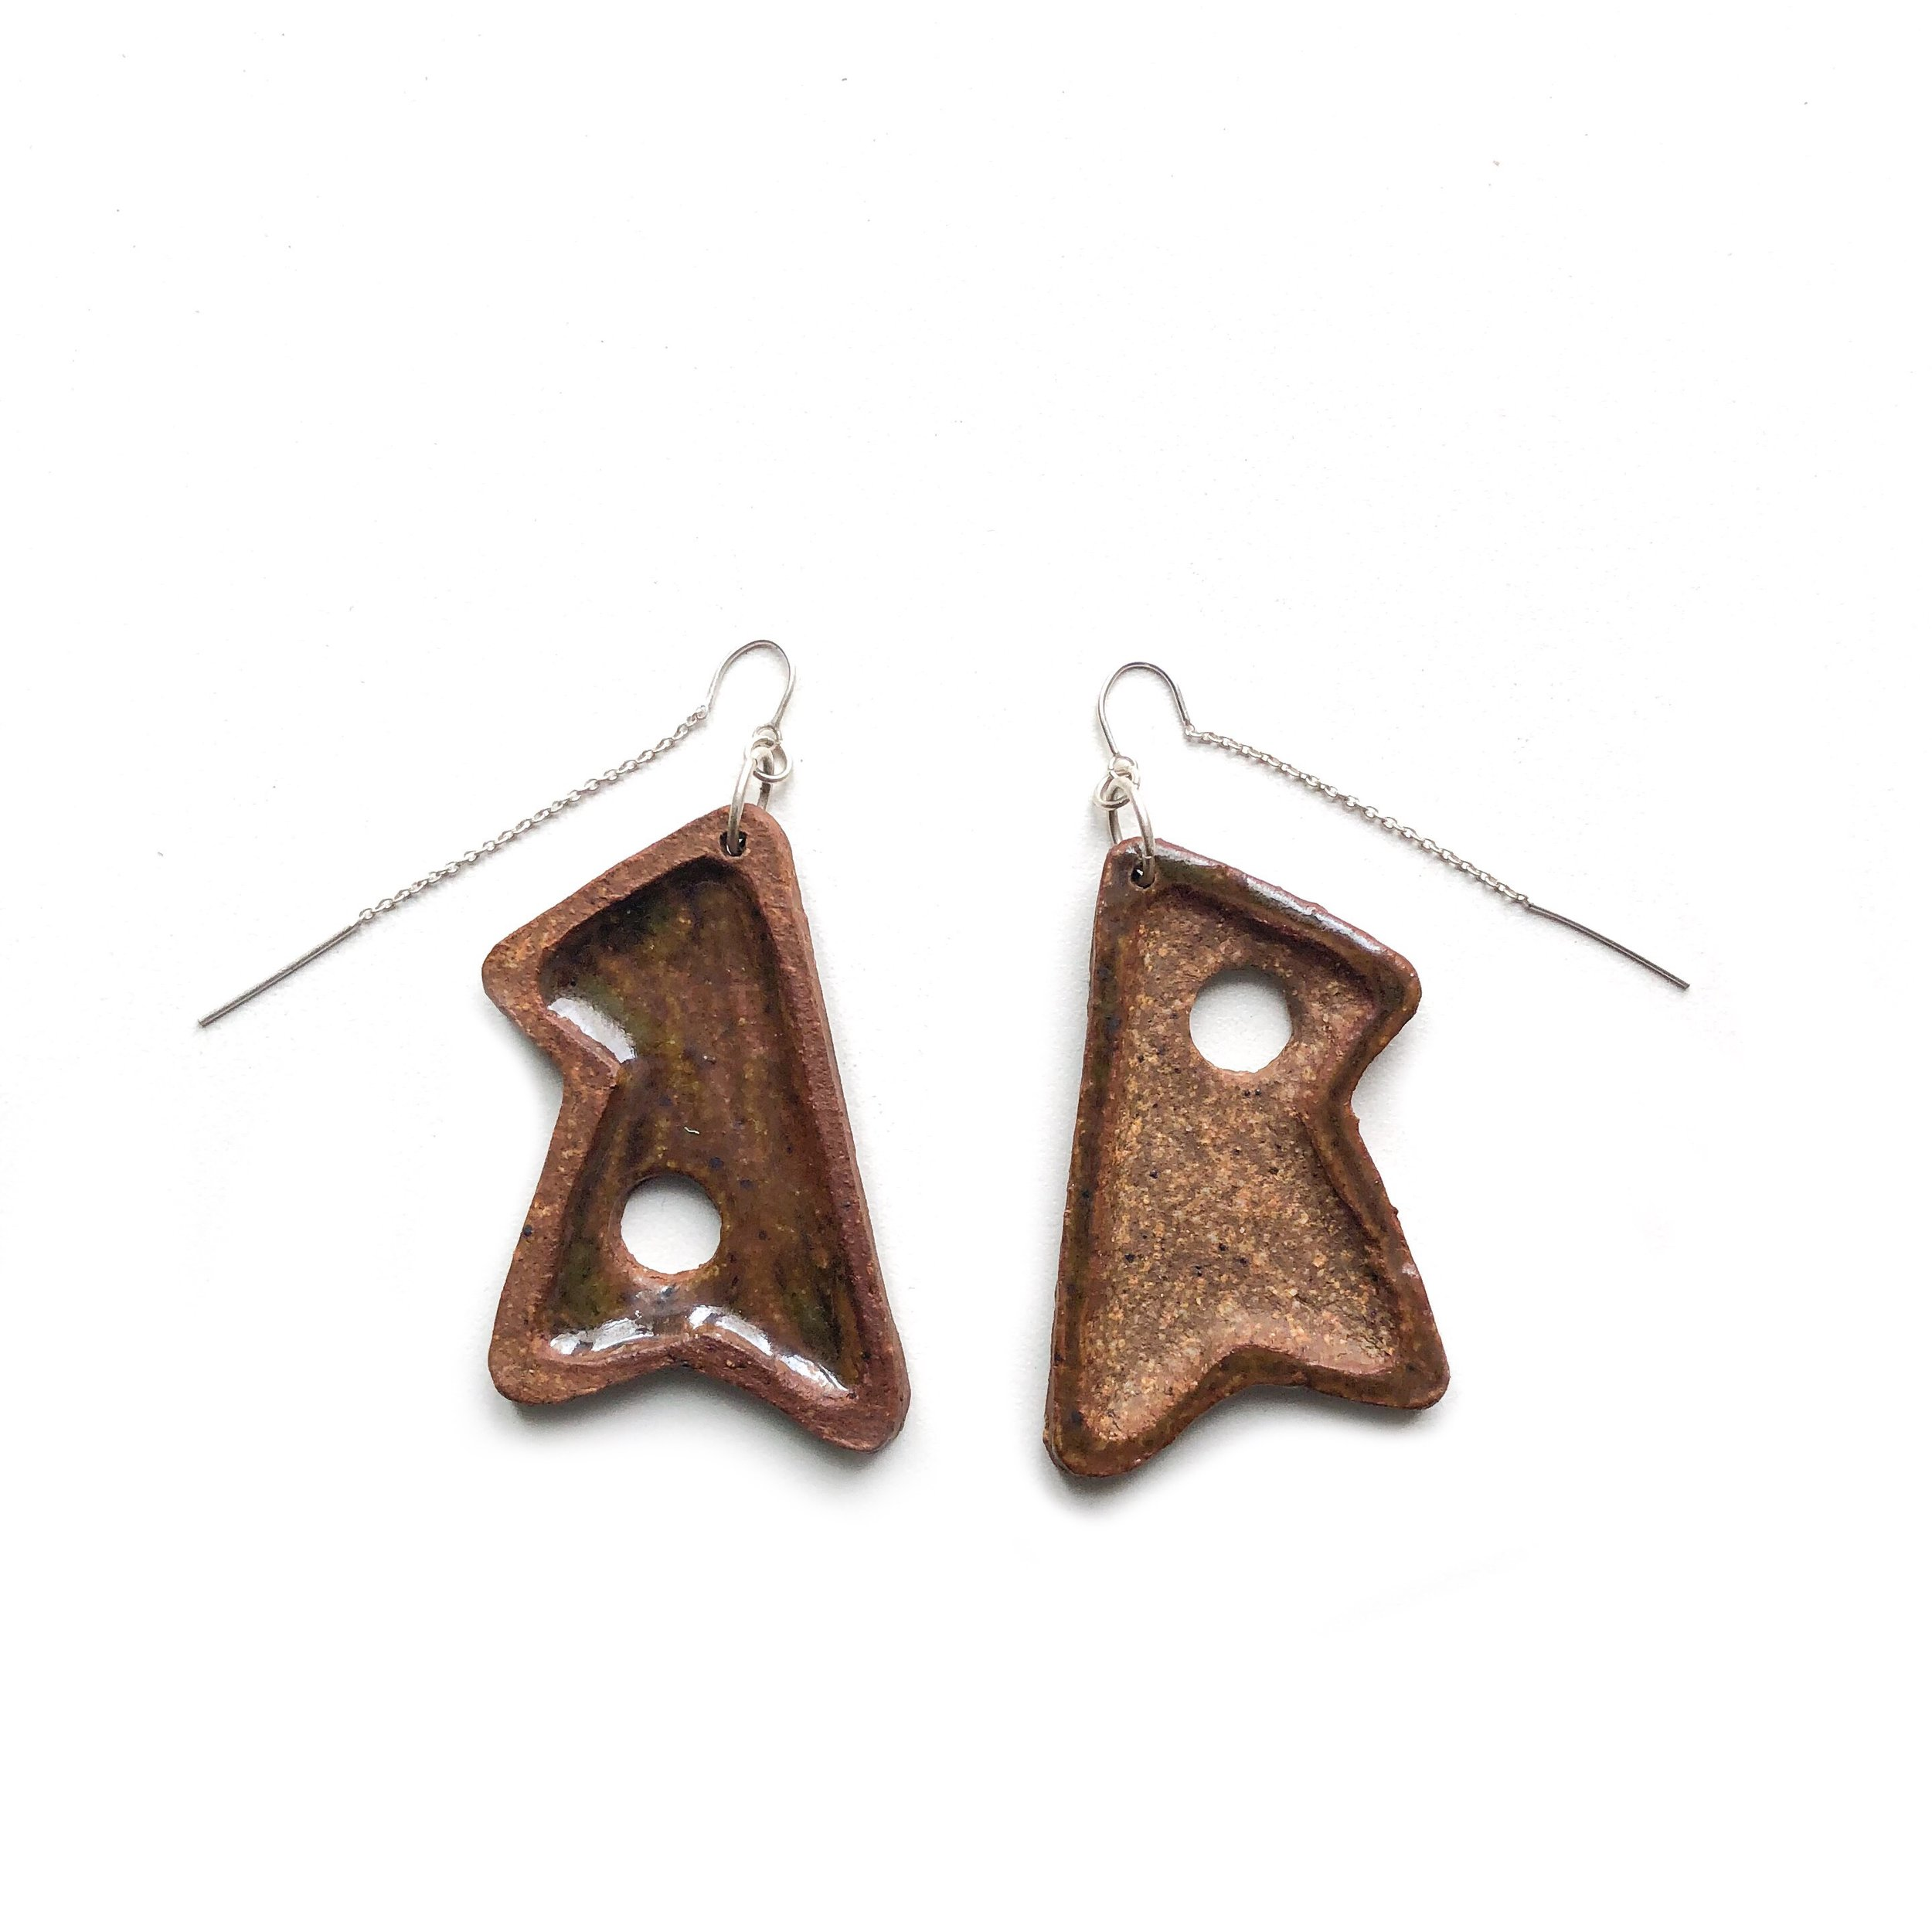 kushins_ceramic_earrings2.JPG